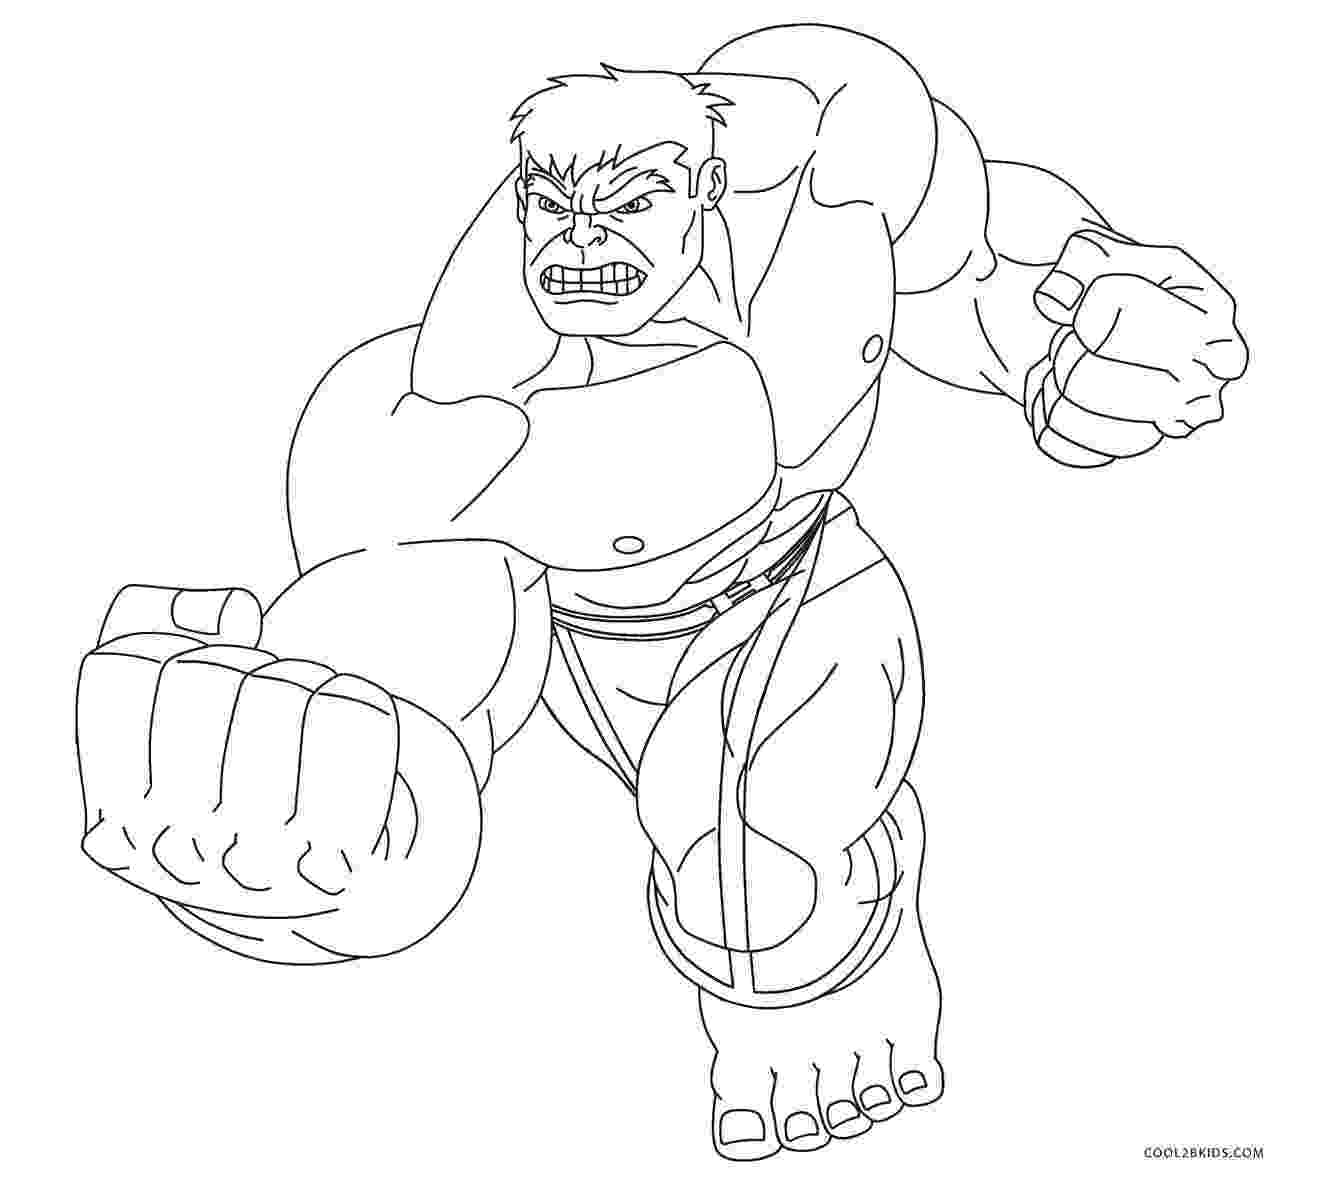 coloring pages hulk hulk coloring pages lets coloring hulk coloring pages